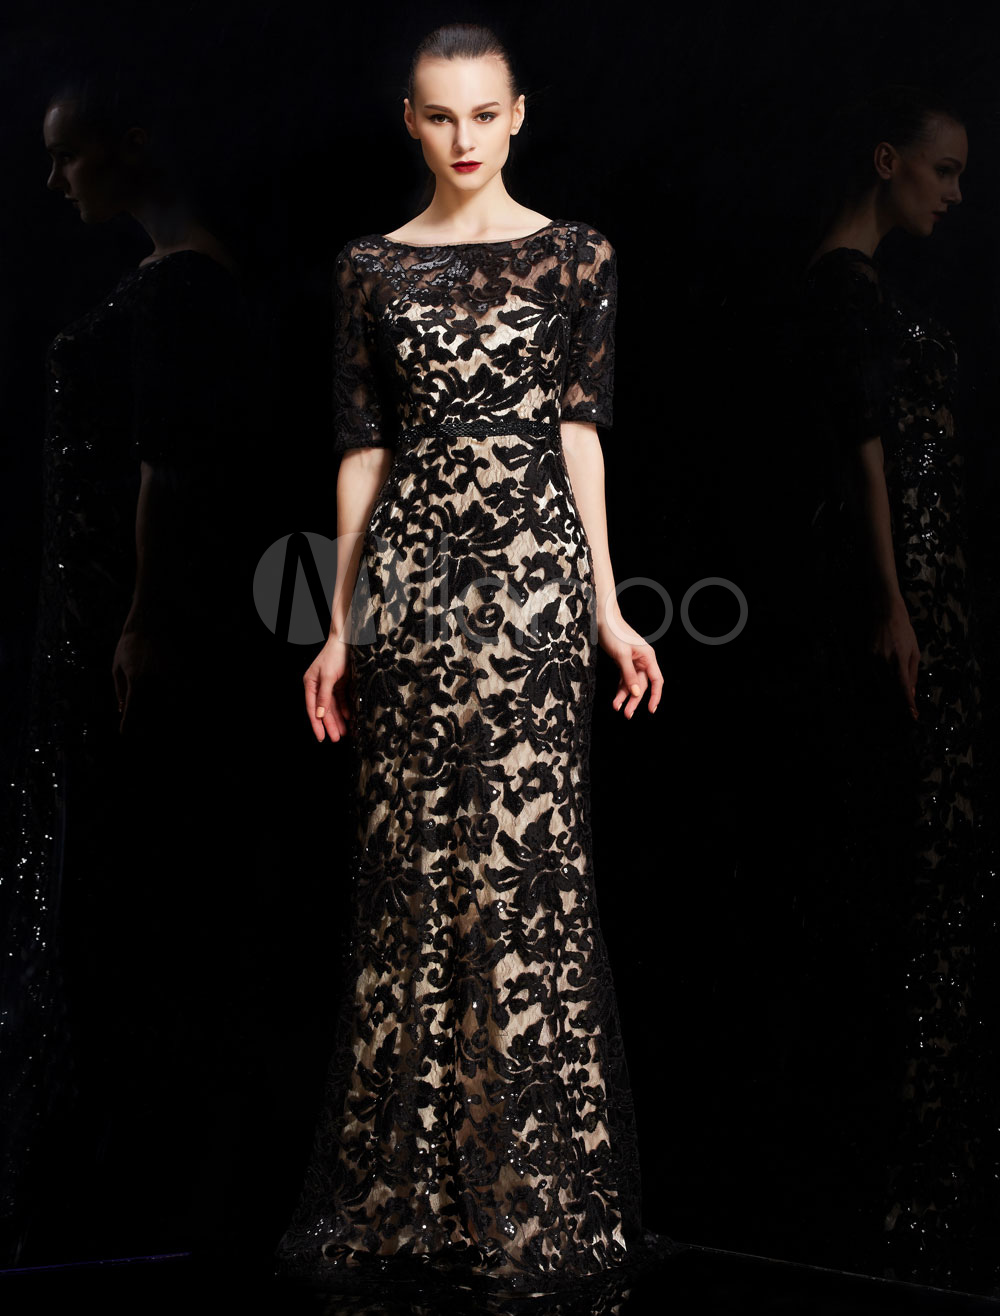 Shining Sequin Embroidery Sheer Illusion Half Sleeves Evening Dress in Burgundy and Black